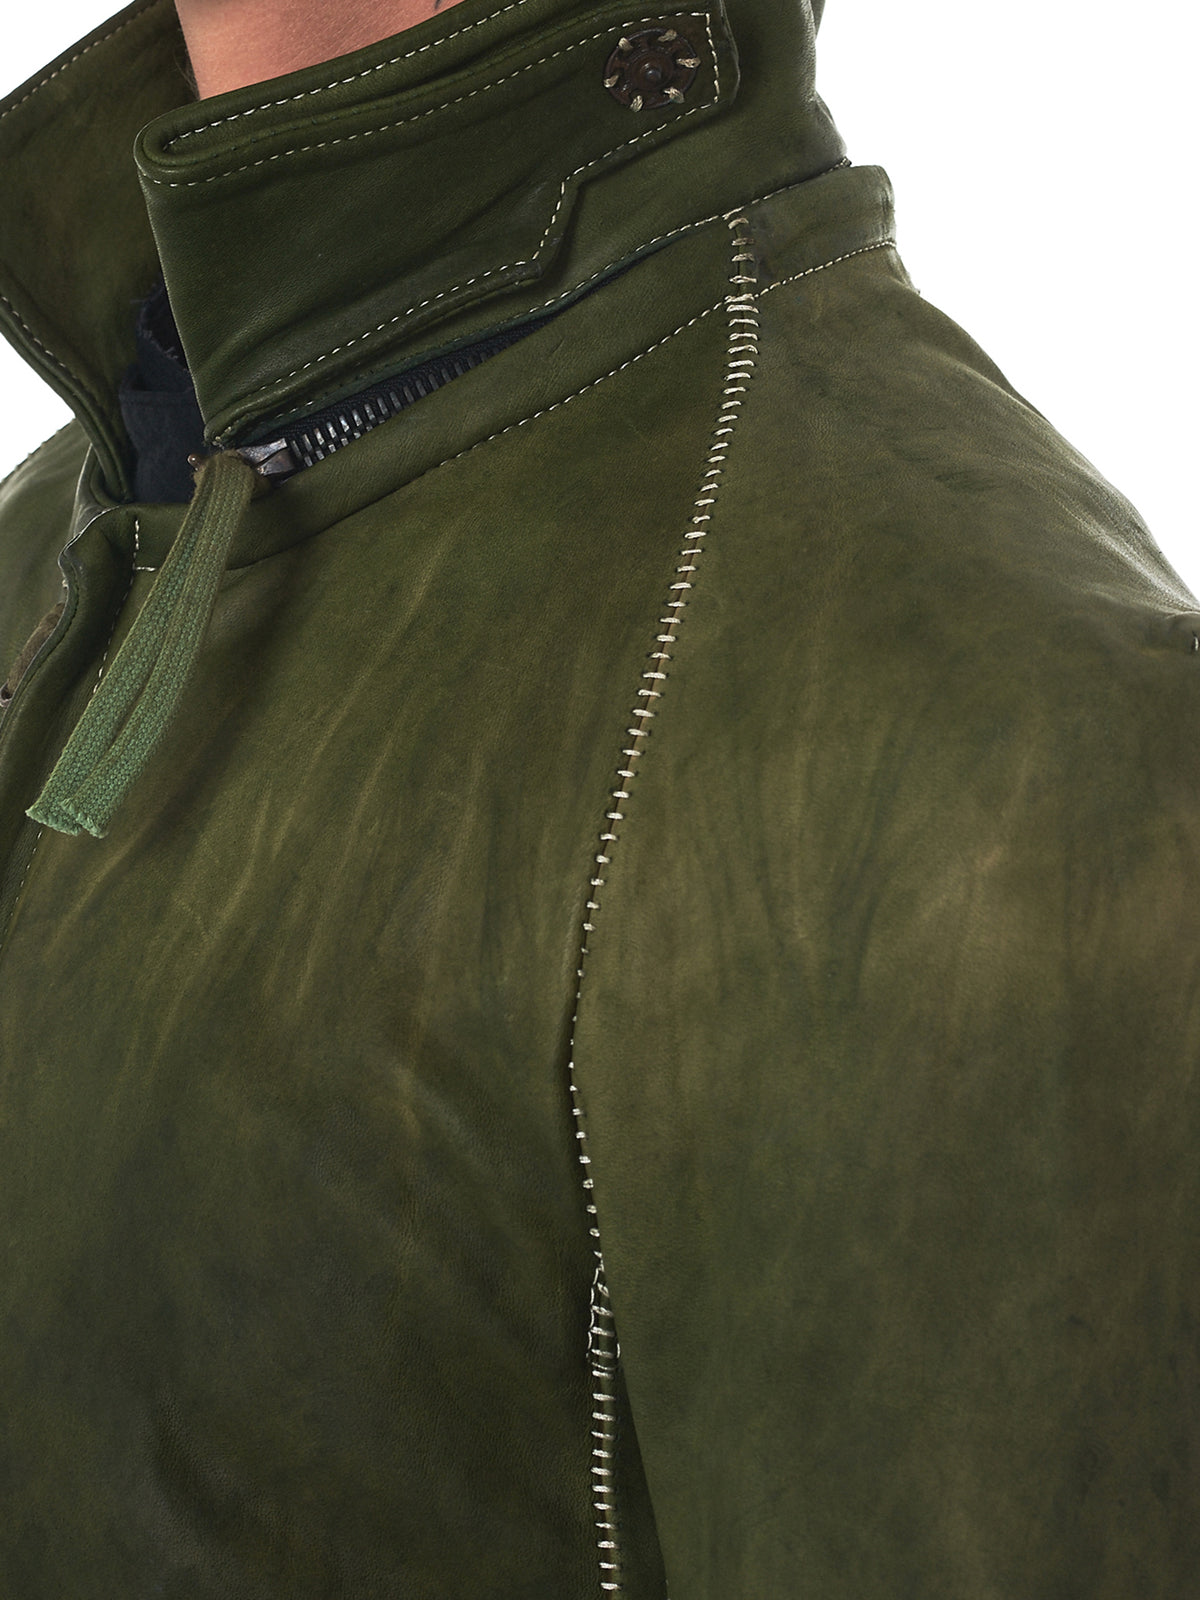 Boris Bidjan Saberi Leather Jacket - Hlorenzo Detail 2